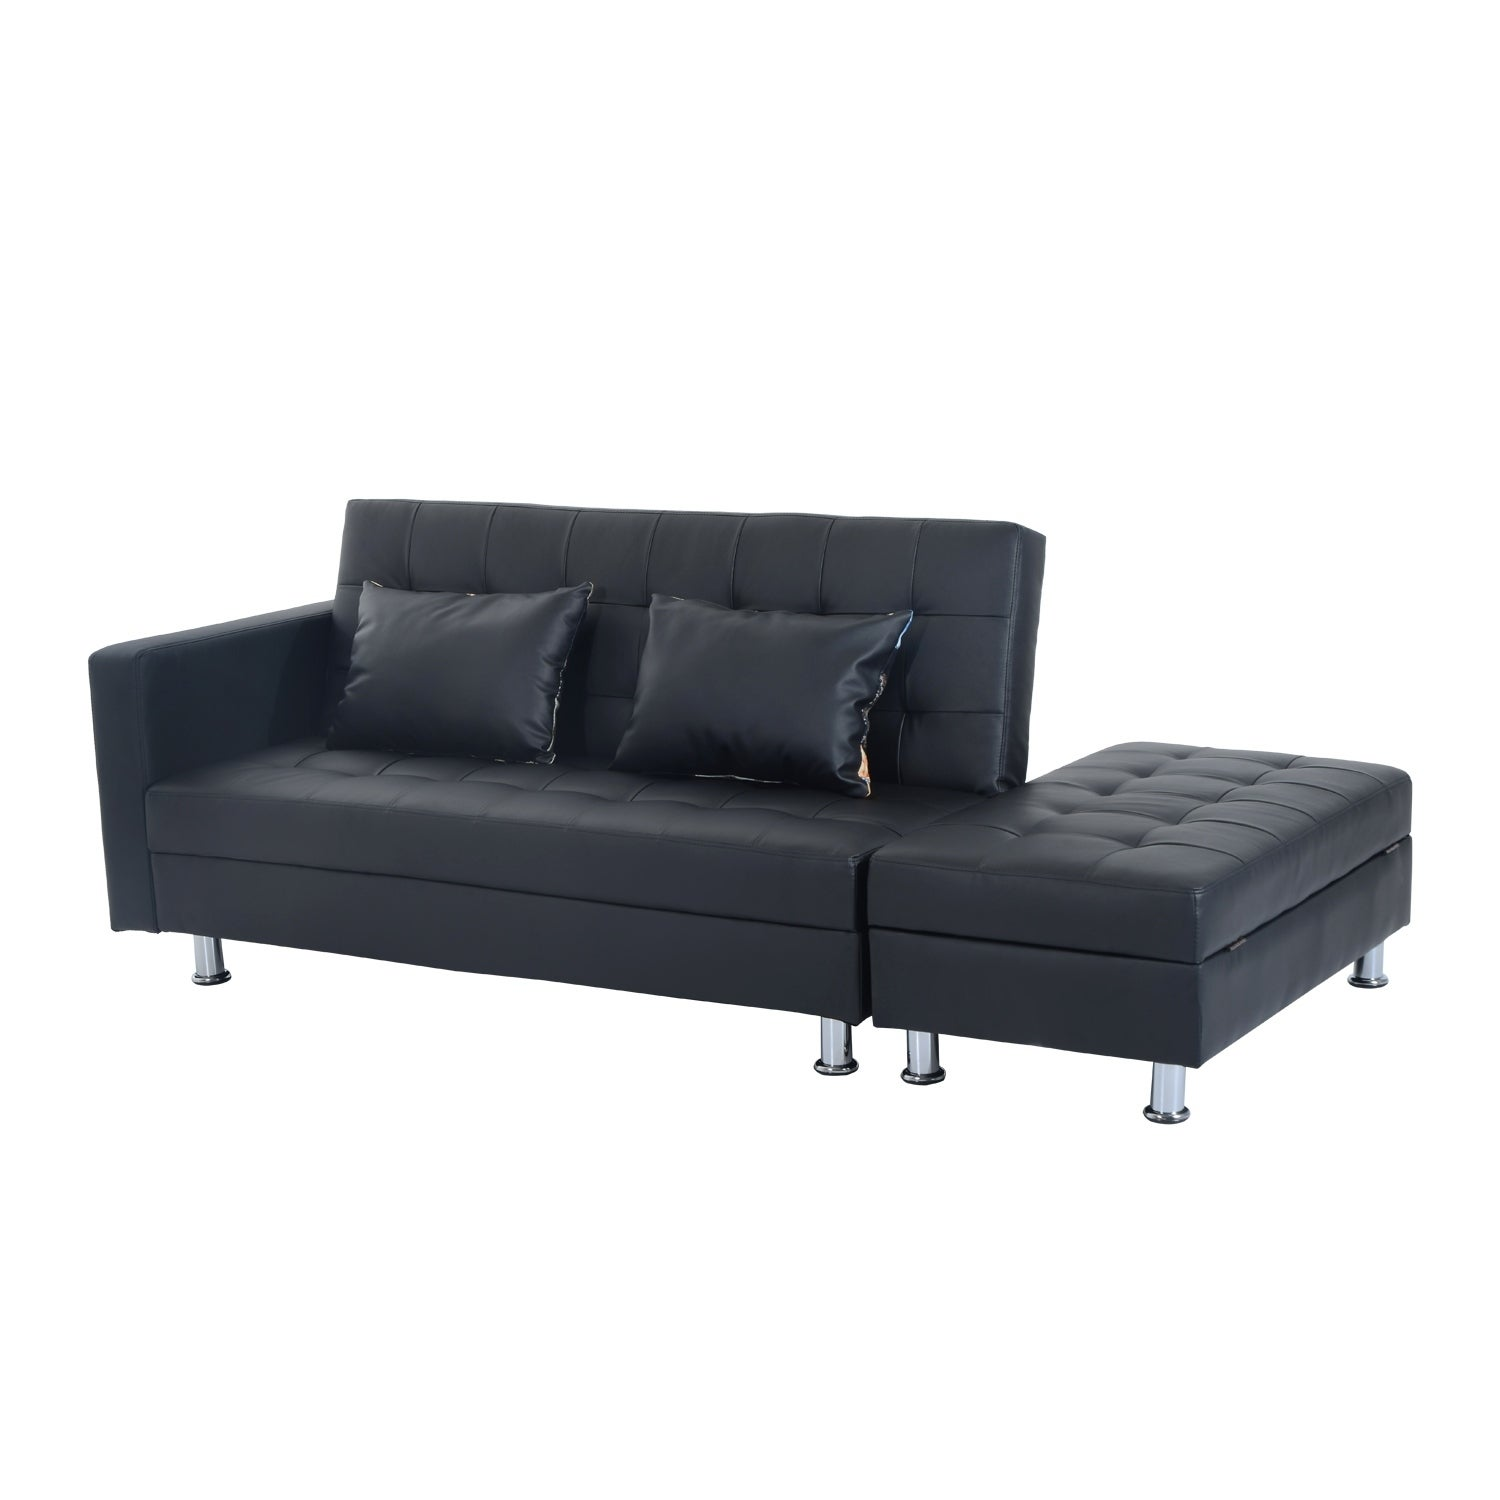 HomCom Faux Leather Convertible Sofa Sleeper Bed w/Storage Ottoman